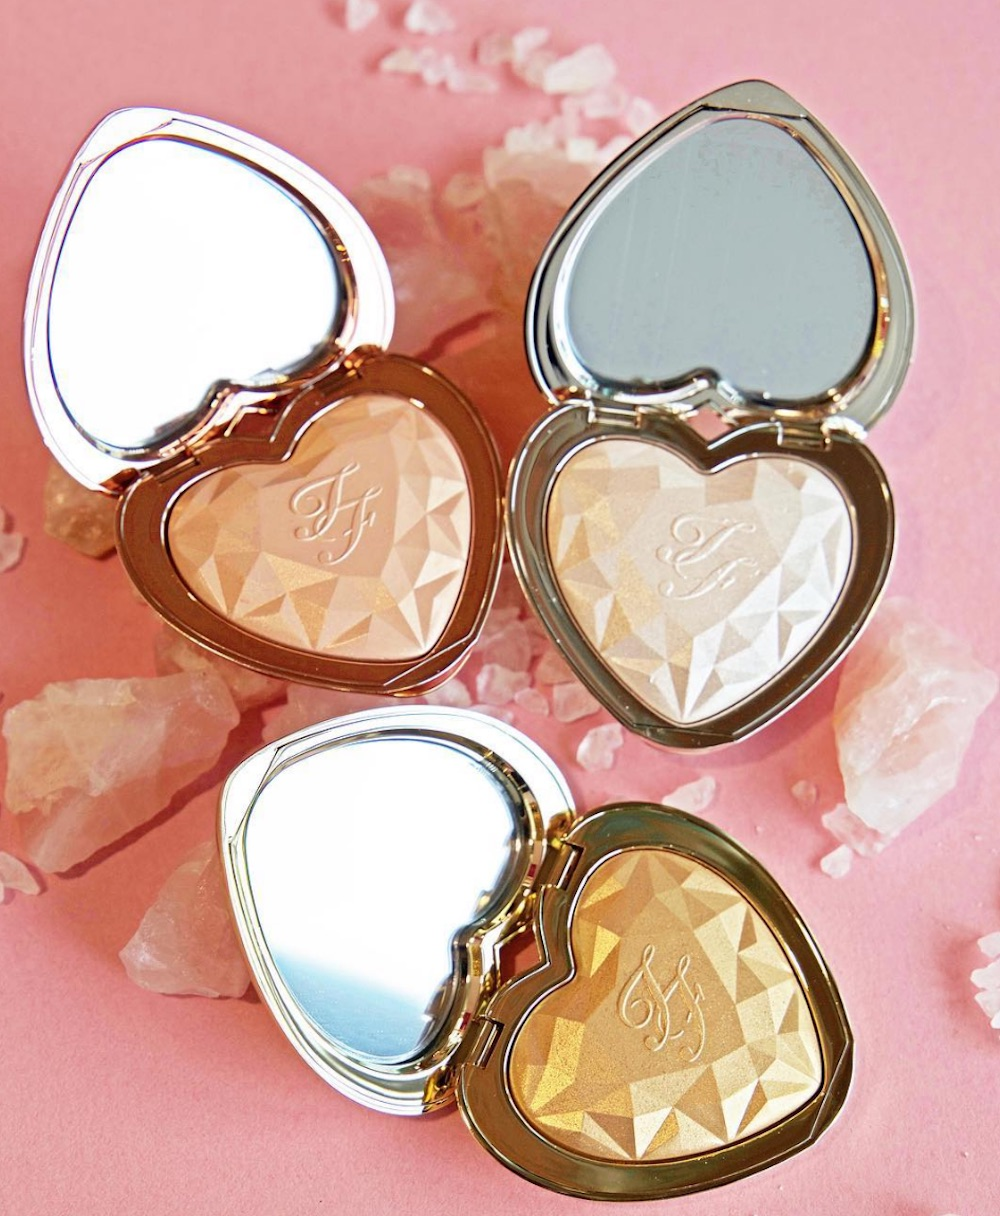 Jerrod Blandino shared a sneak peek of Too Faced's upcoming Love Light highlighter, and the packaging is giving us heart eyes